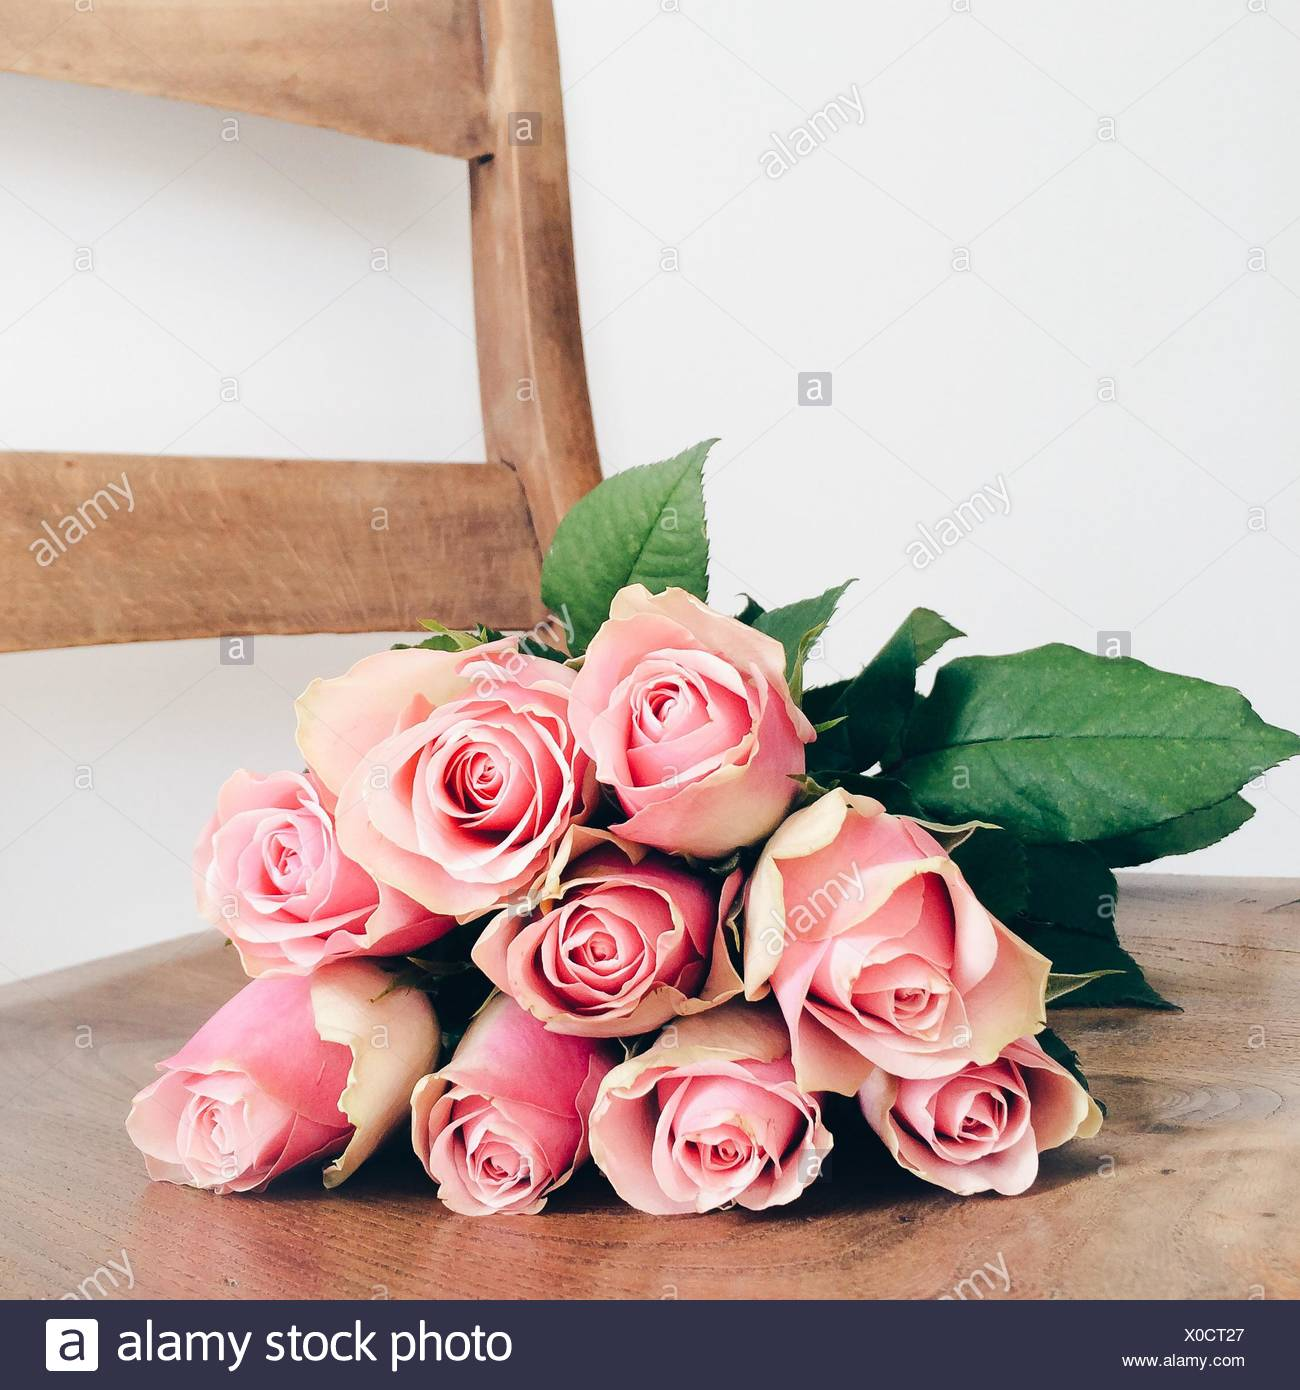 Bouquet de roses roses lying on chair Photo Stock